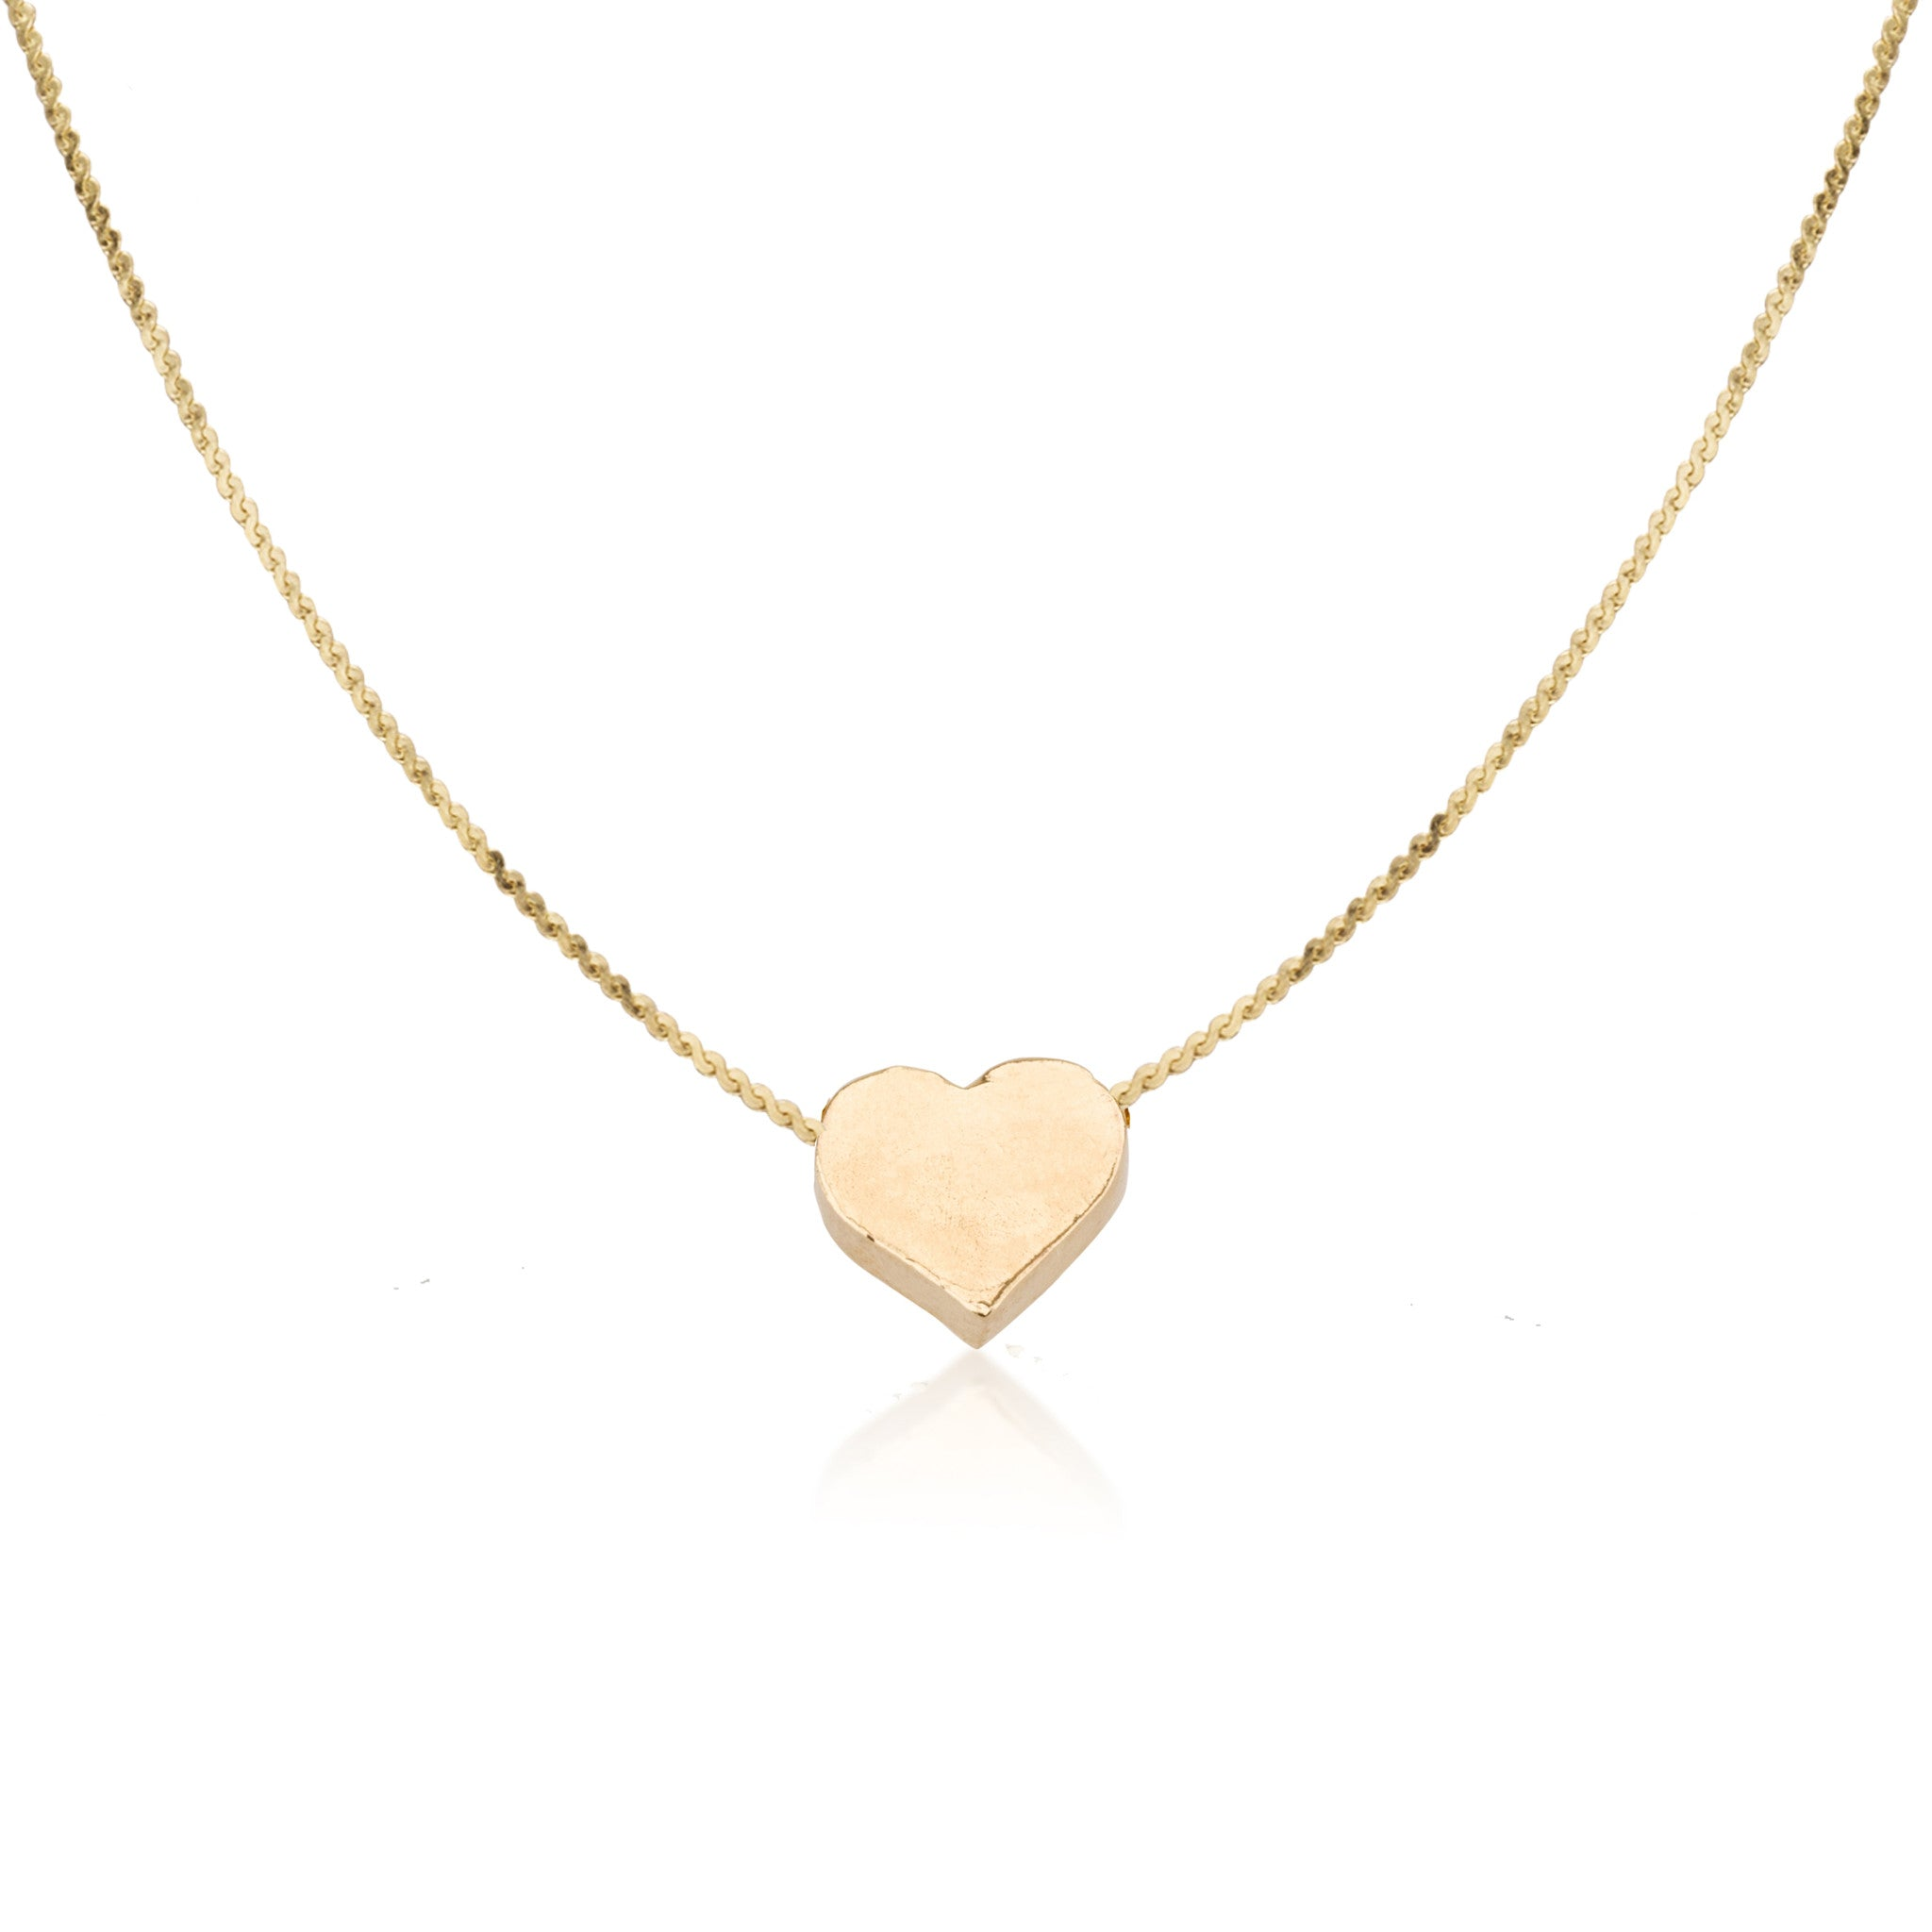 jewellery heart jewelry products bjorg medium bj rg necklacel gold anatomic necklace